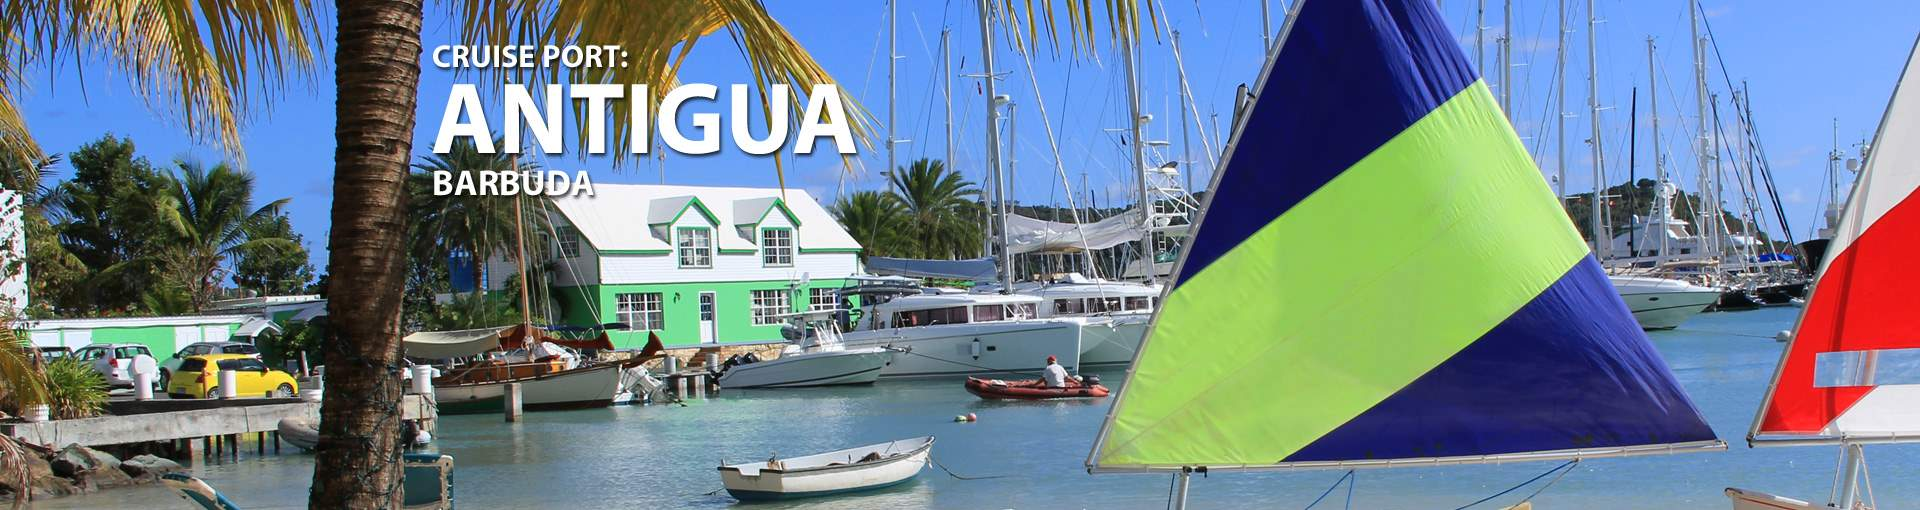 Cruises to Antigua, Antigua Barbuda